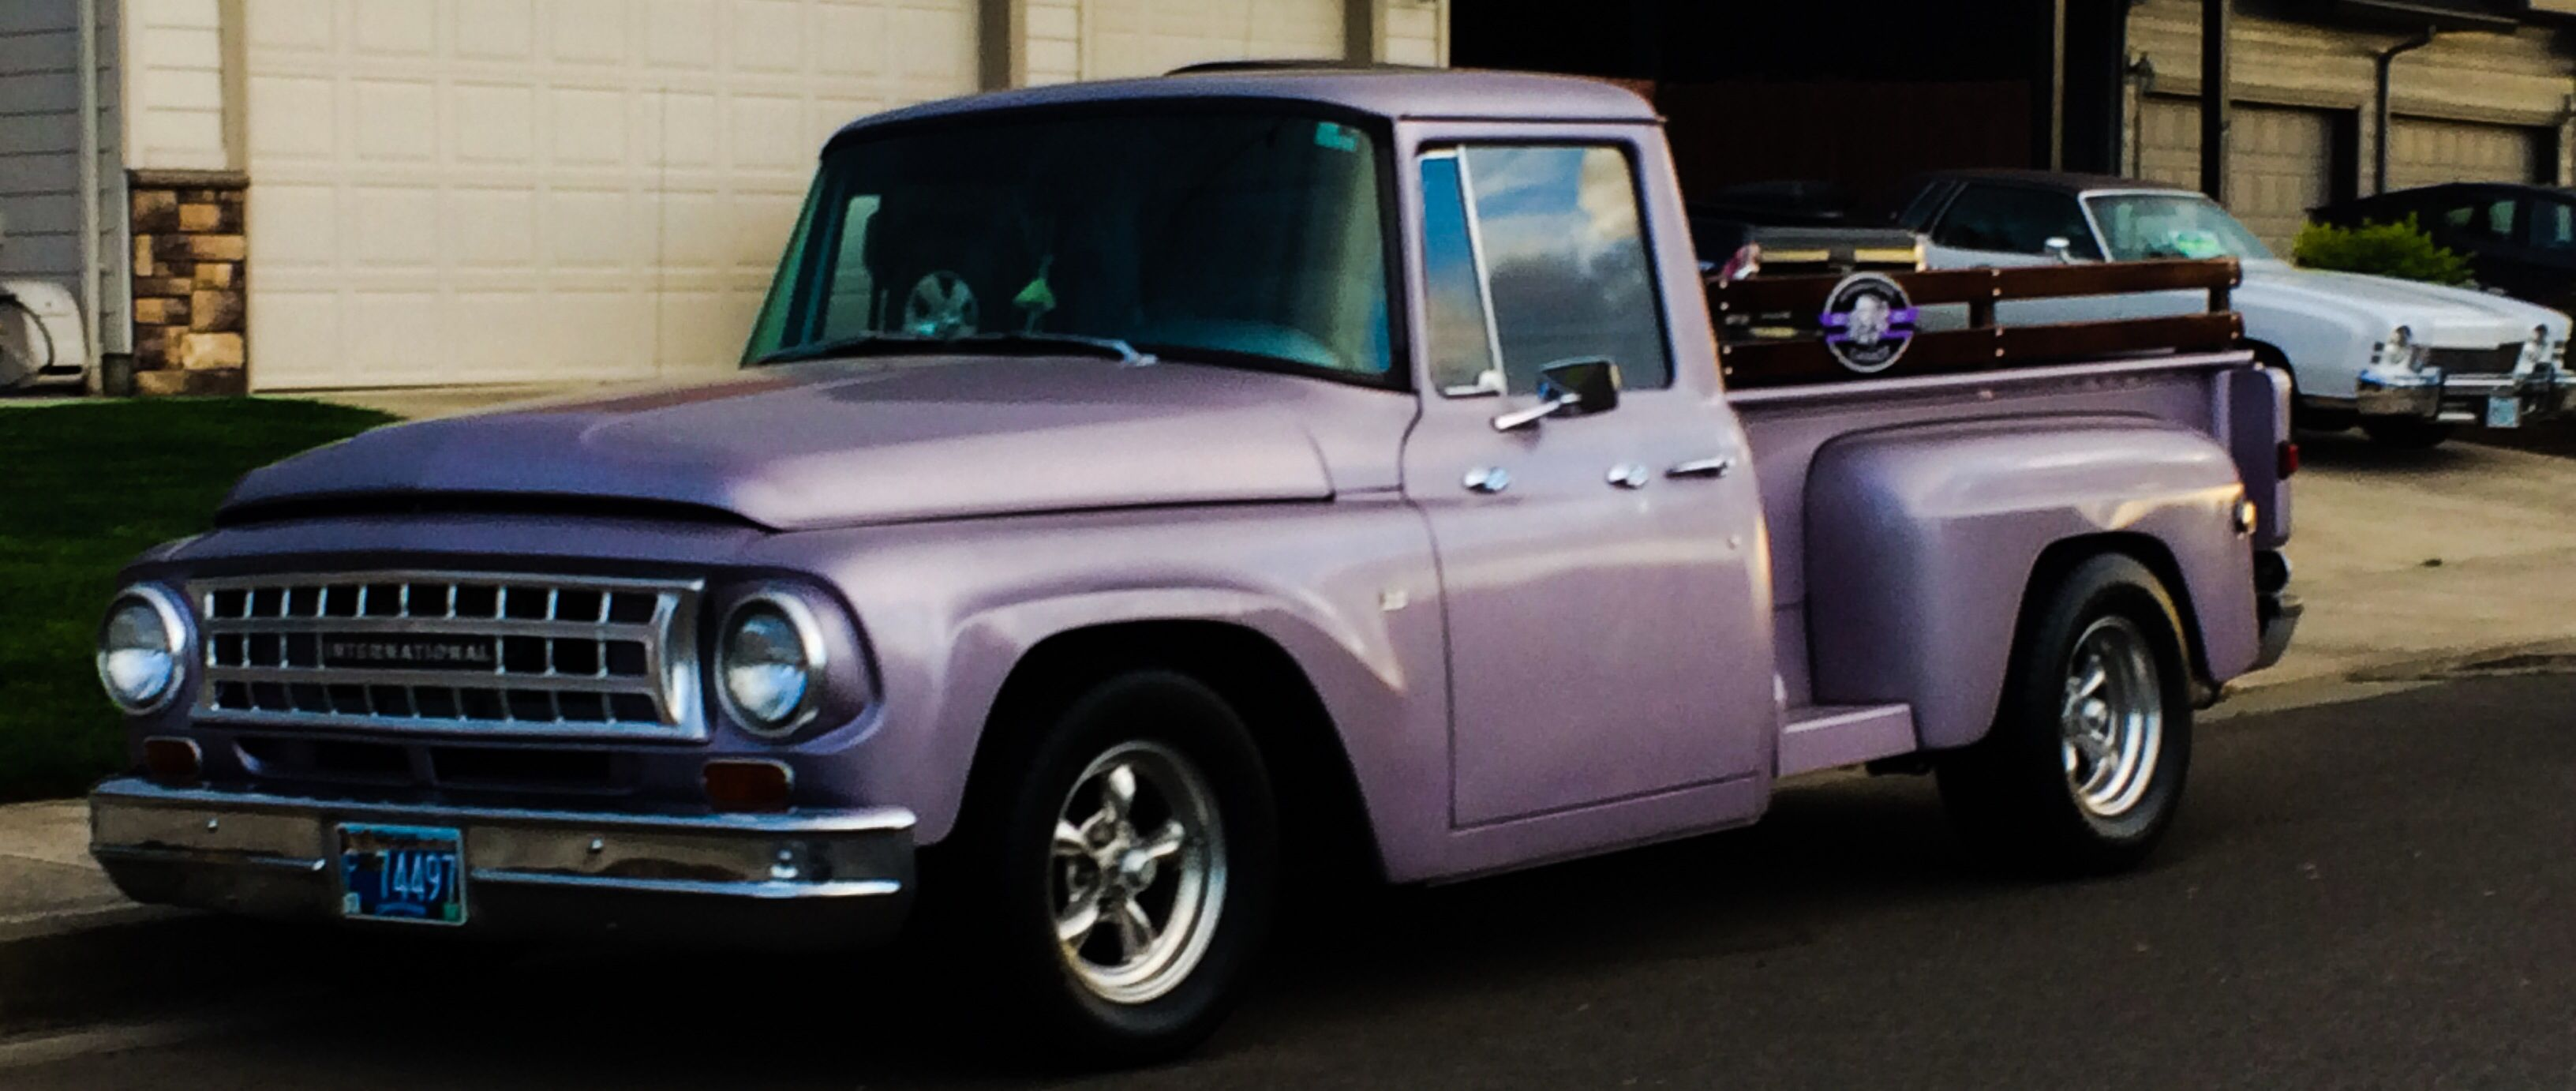 1964 International Pick Up Truck With Images Classic Pickup Trucks